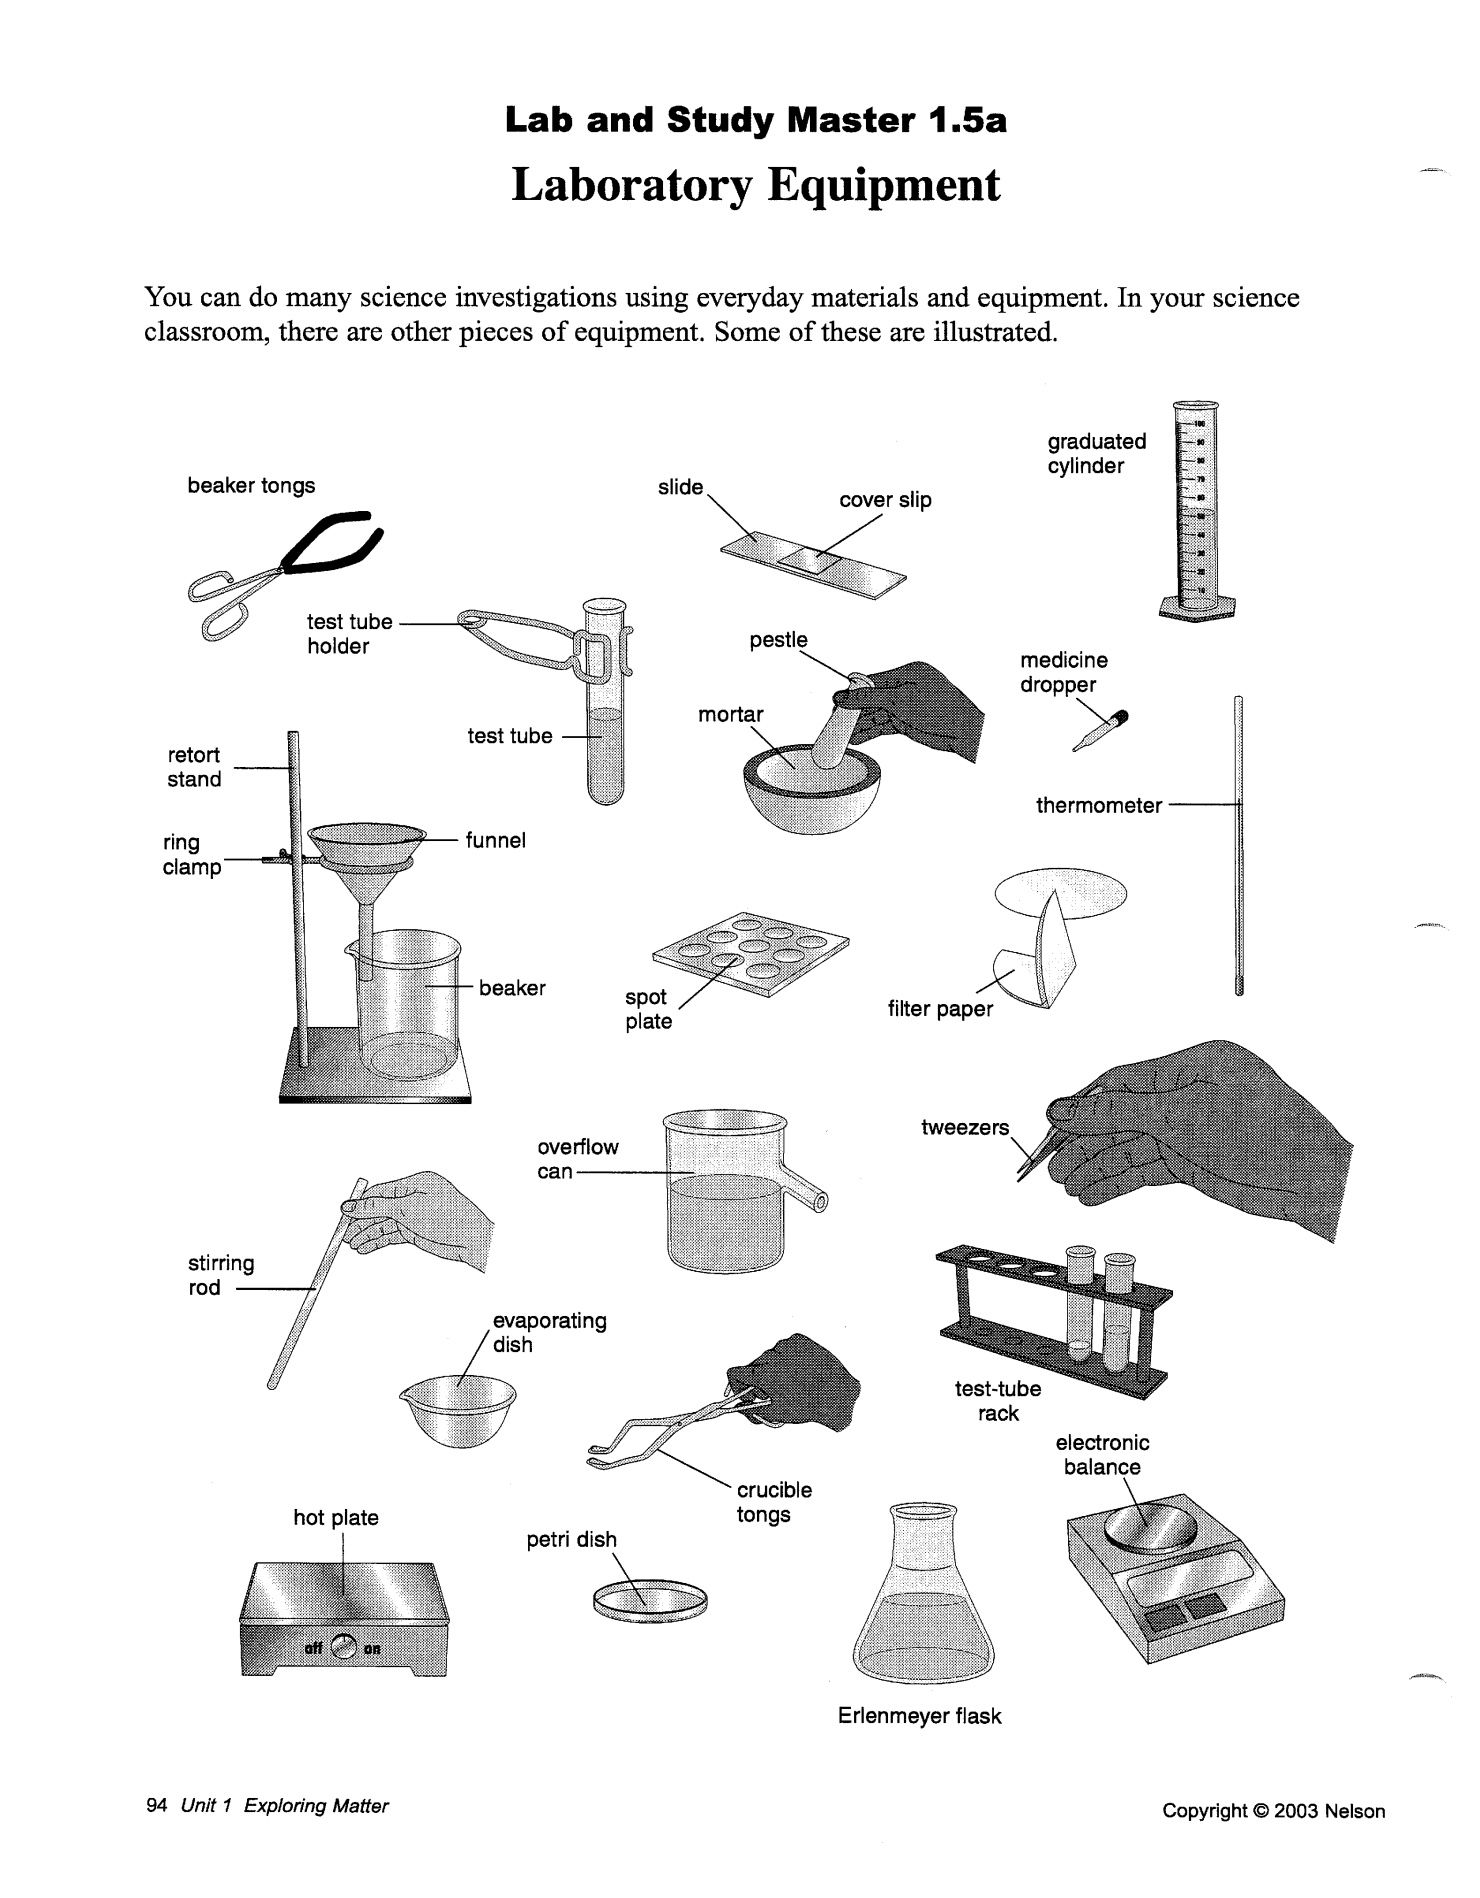 medium resolution of Laboratory Equipment - Names for some common pieces - Monday